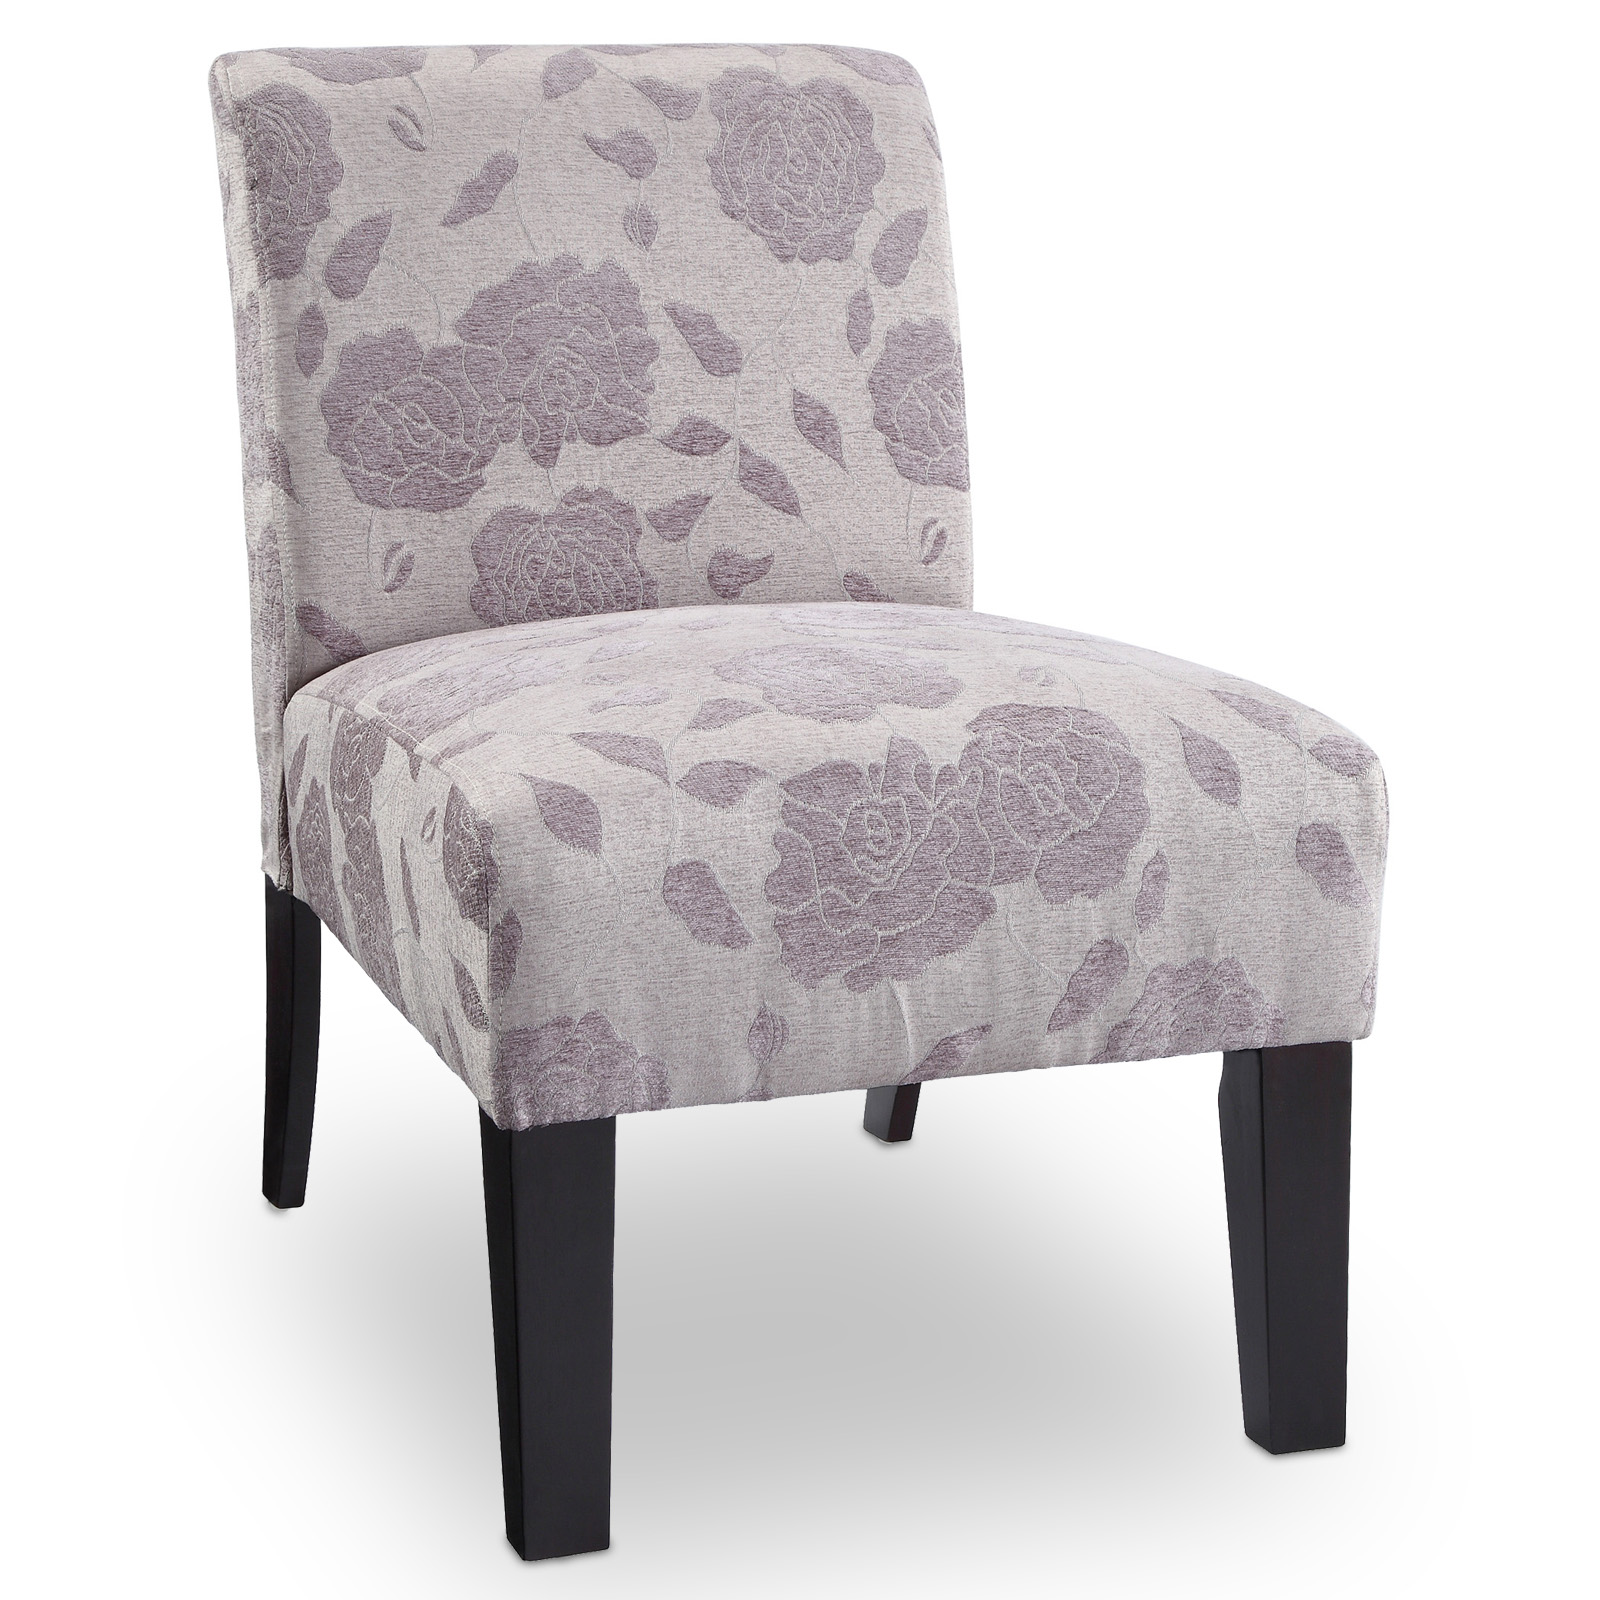 Deco Accent Chair - Rose